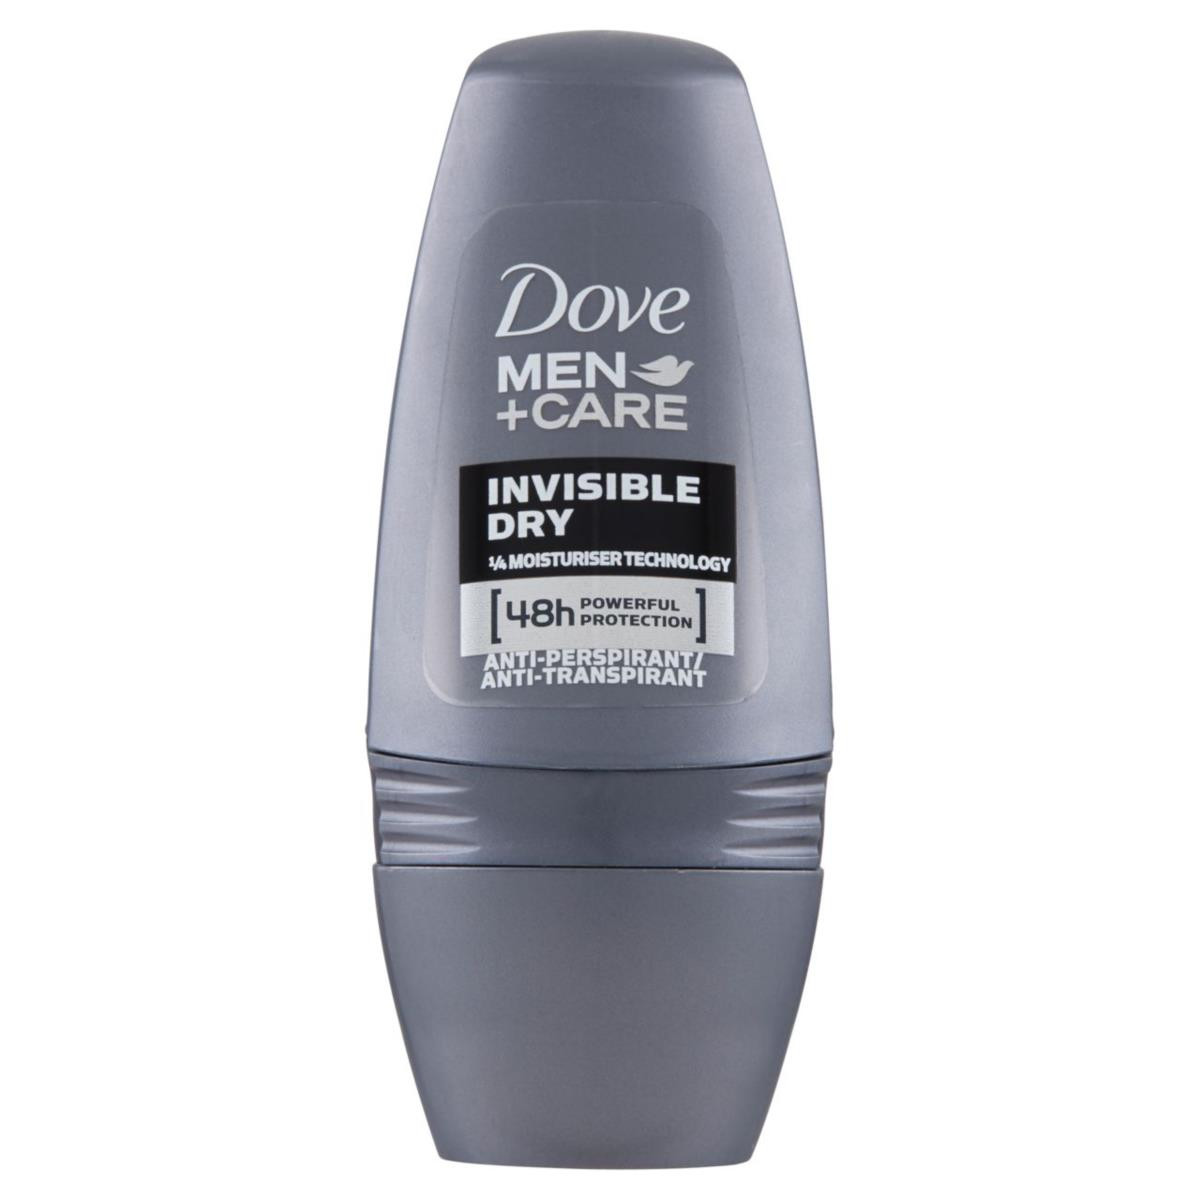 Dove deodorante Man+Care Invisible Dry Roll-on